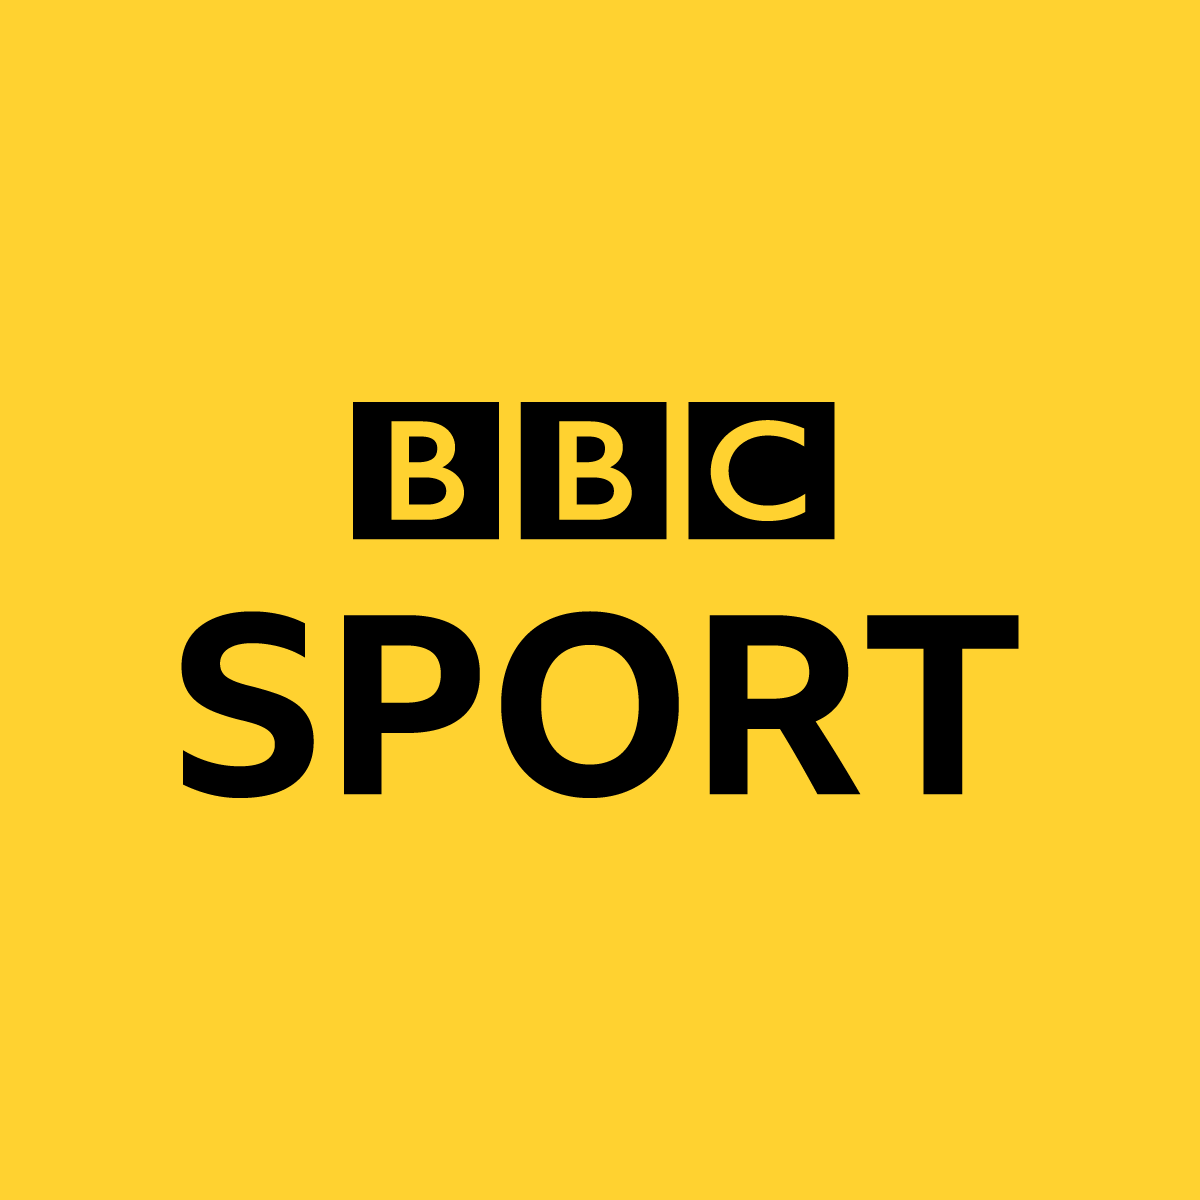 England v Pakistan: Adil Rashid dismisses Shoaib Malik with brilliant caught & bowled - BBC Sport thumbnail